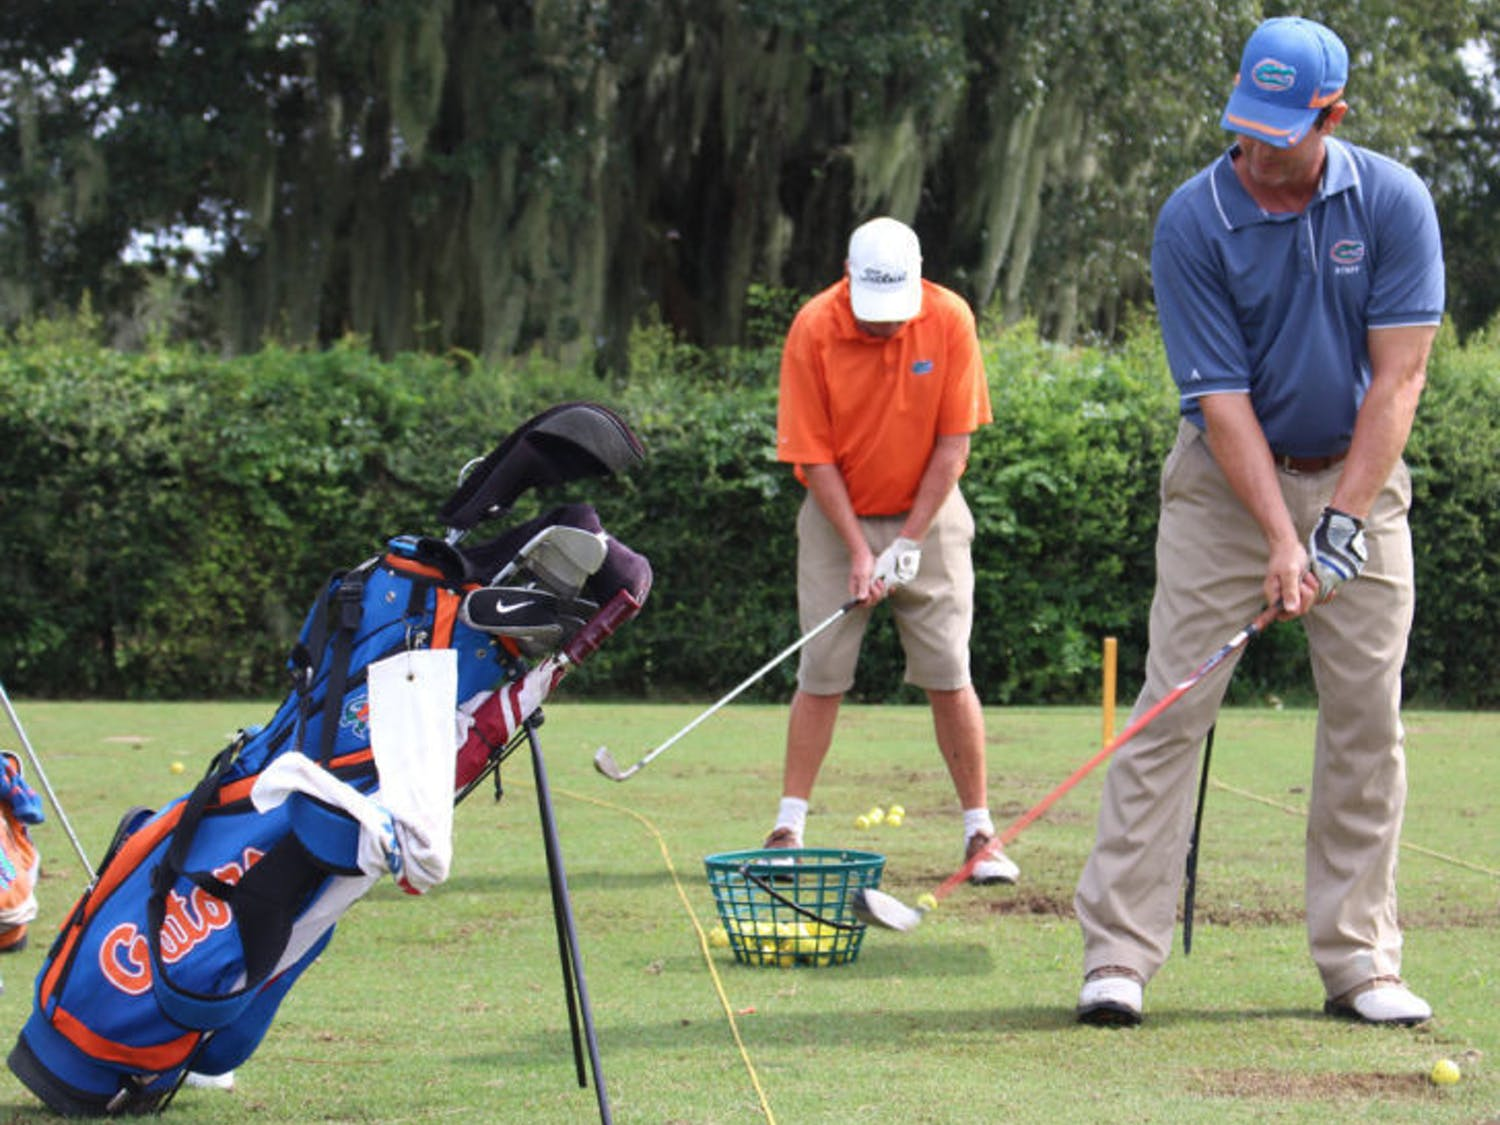 Maintenance staff members Scott Dowling, back, and Mike Brown, front, line up to hit at the driving range of UF's Mark Bostick Golf Course on Wednesday.